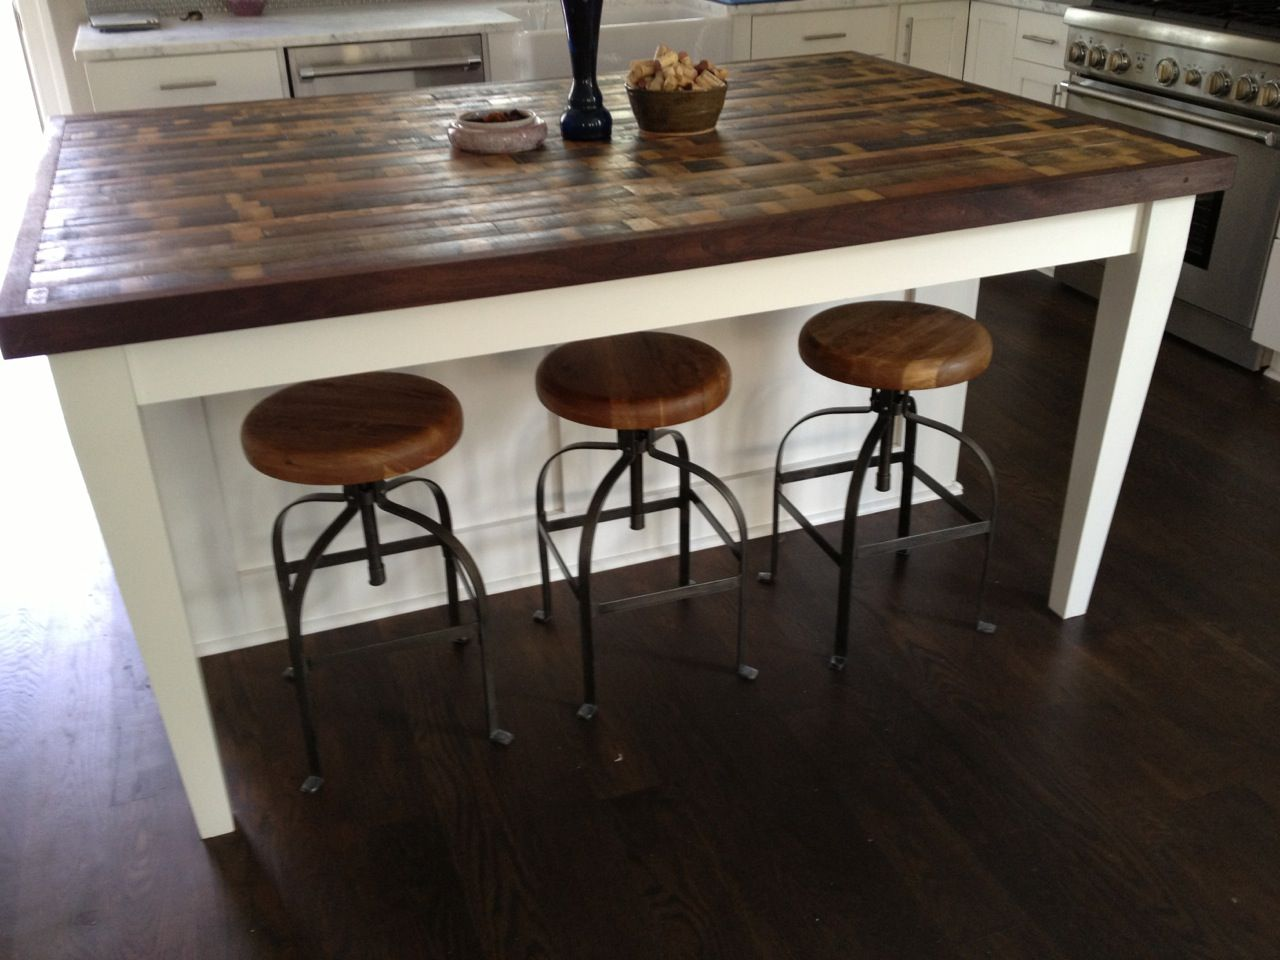 12 Top Reclaimed Wood Island